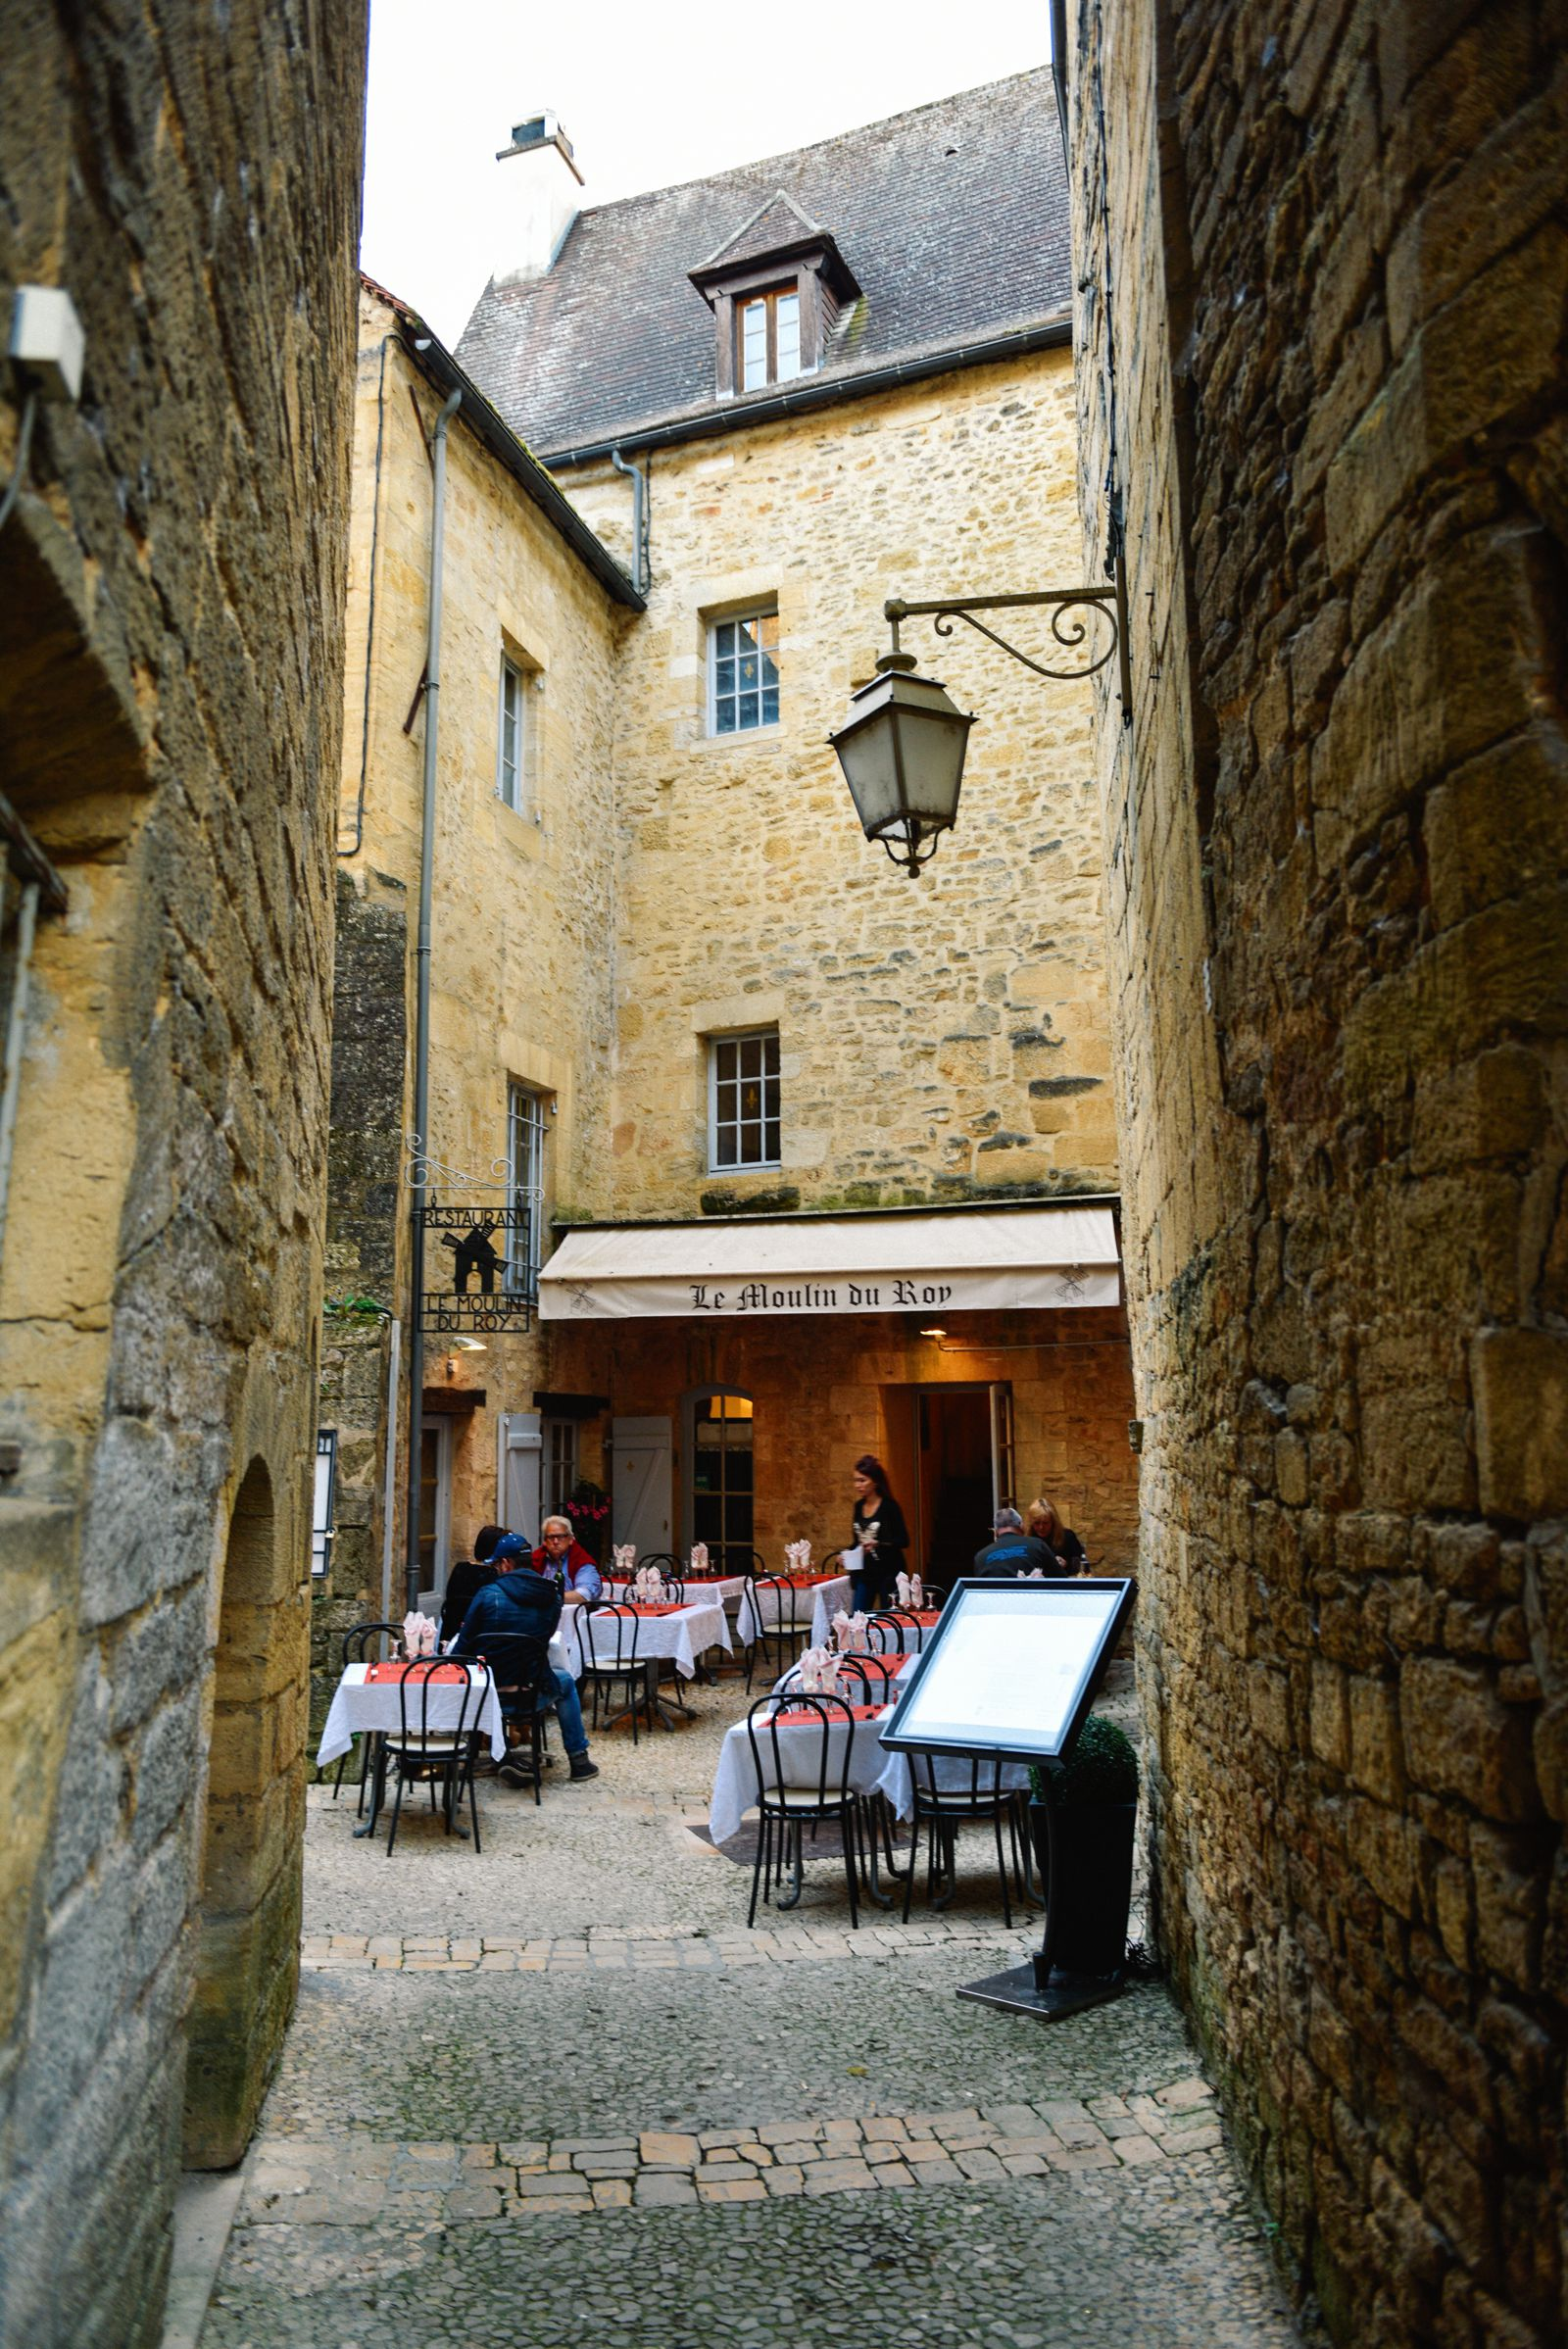 The Old Historic French Town Of Sarlat (29)